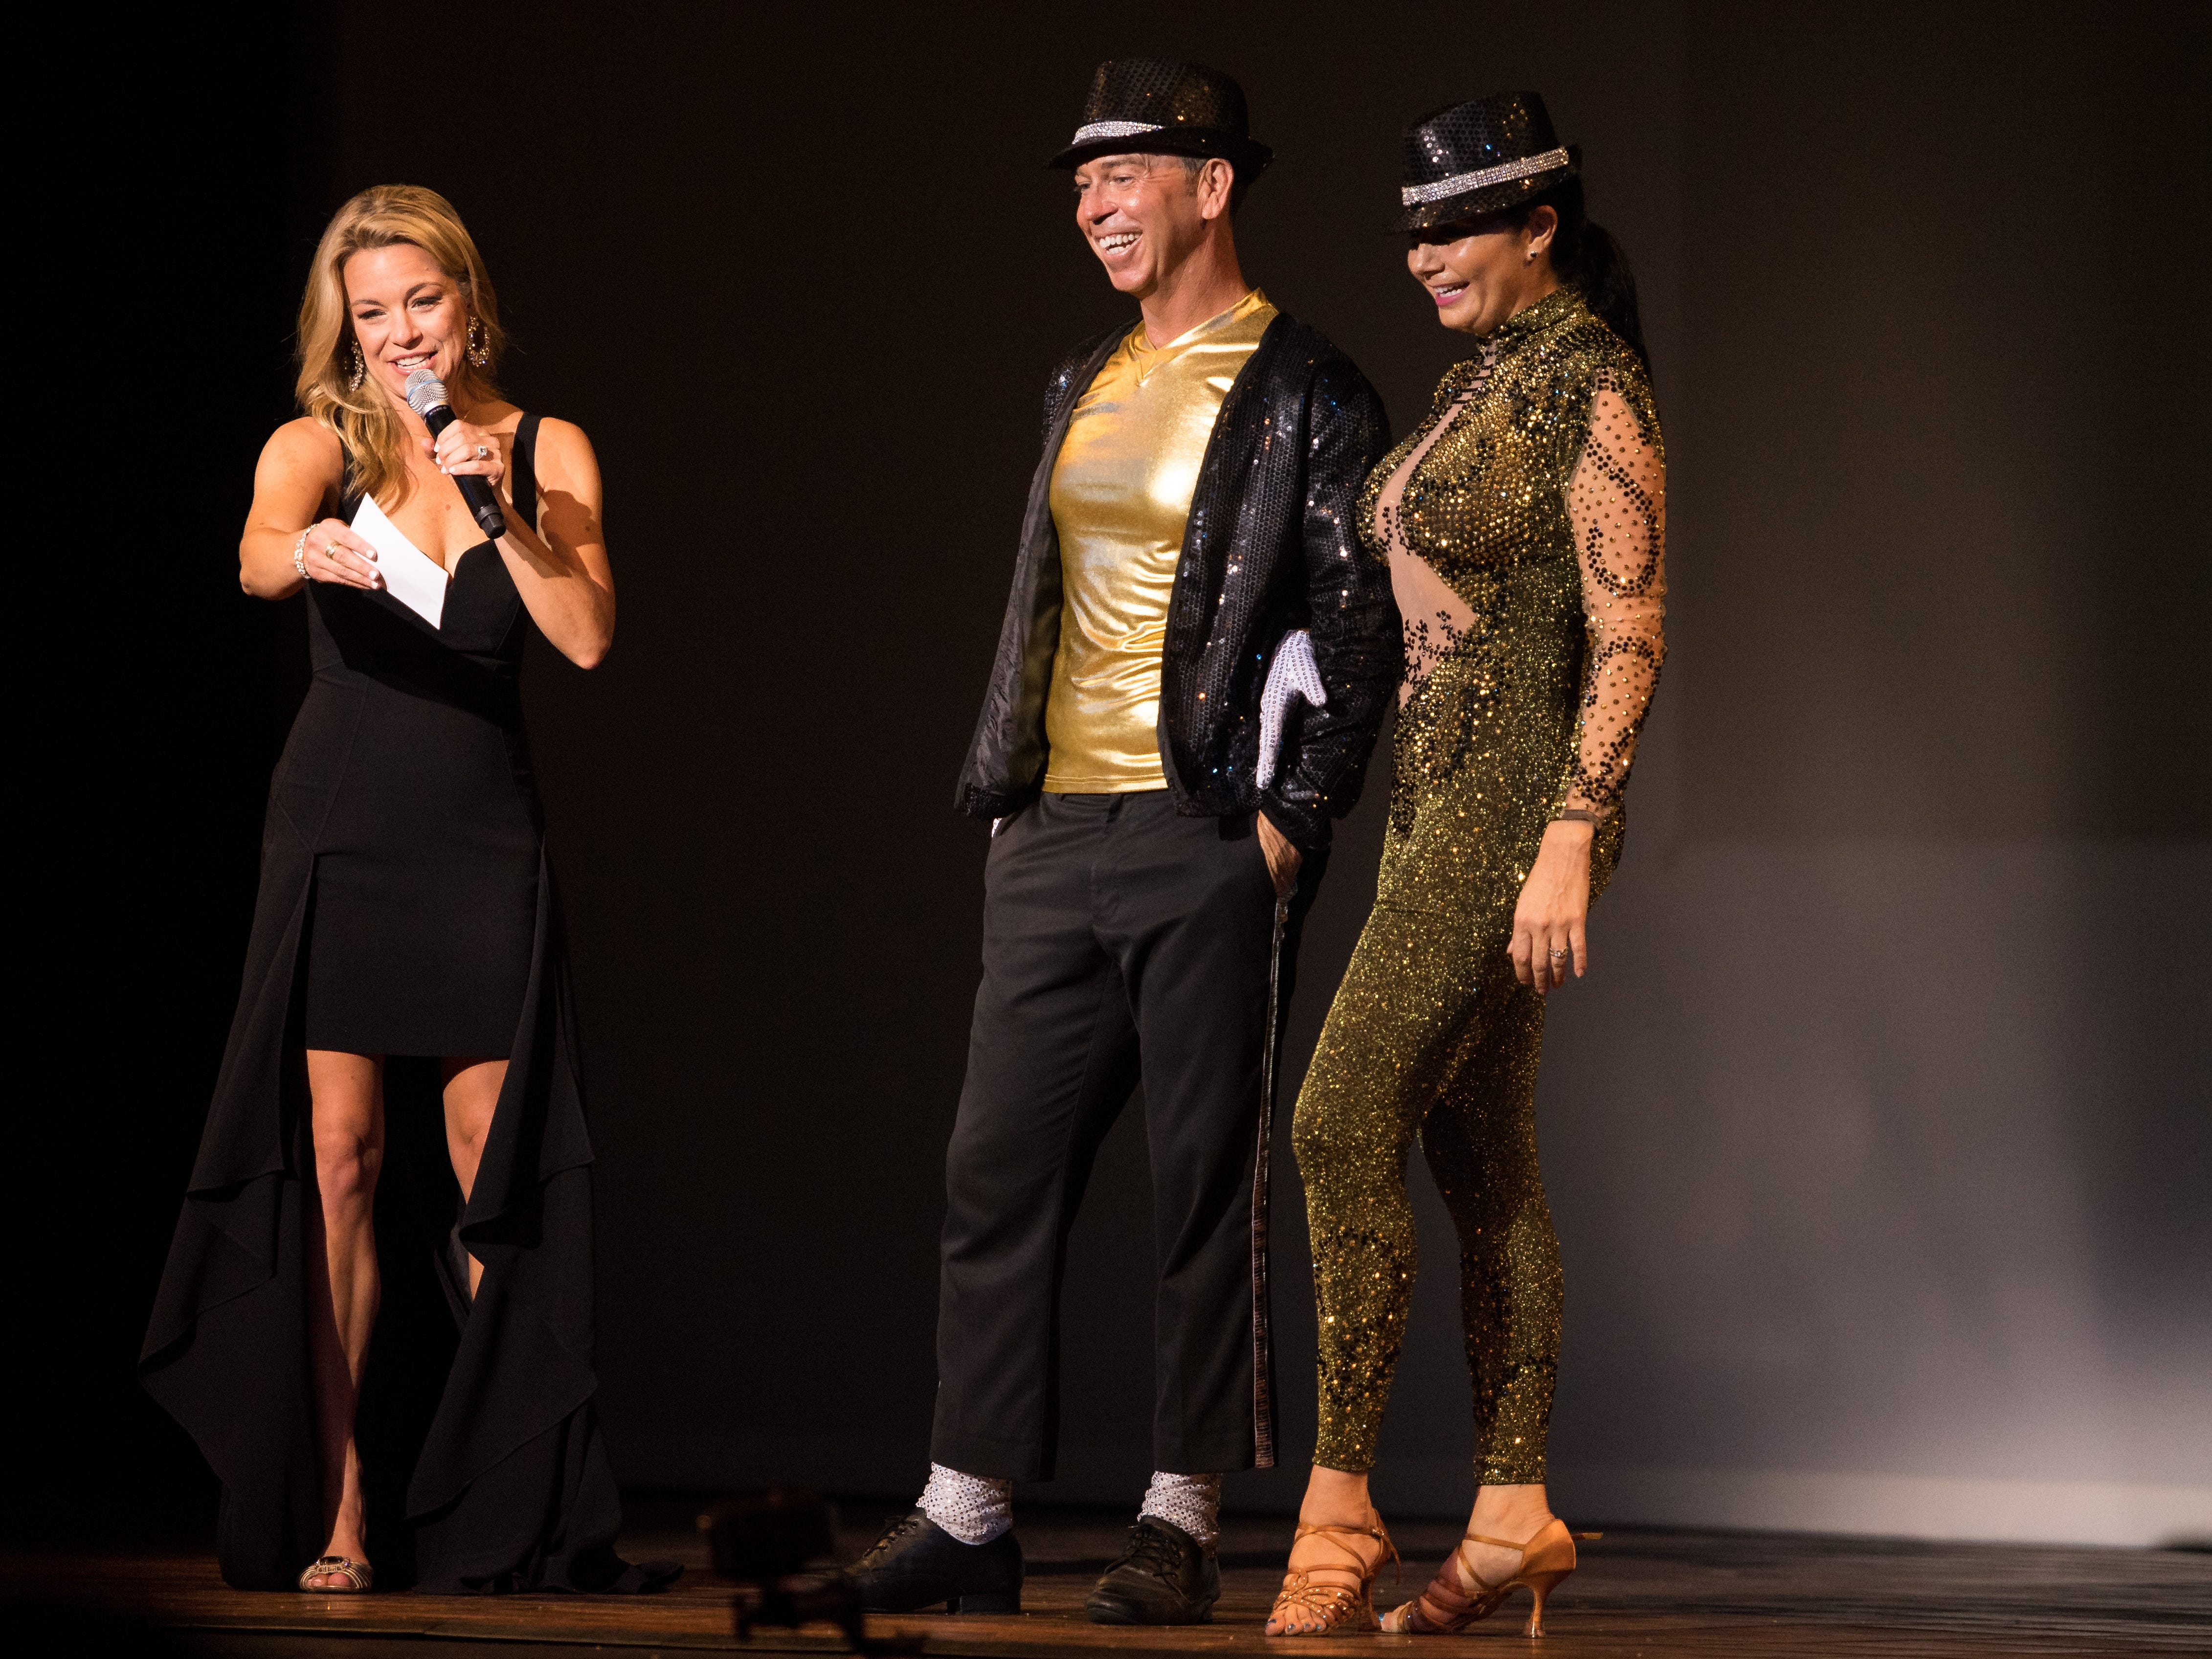 Star dancer Robby Rivas (center) and instructor Marianella Tobar stand with event emcee Tiffany Corr (left) as they await their scores after their Michael Jackson-themed dance routine at the 11th annual Dancing with Vero's Stars on Saturday, May 11, 2019, at Riverside Theatre in Vero Beach. The duo received a perfect score, and were later awarded the mirror ball trophy.